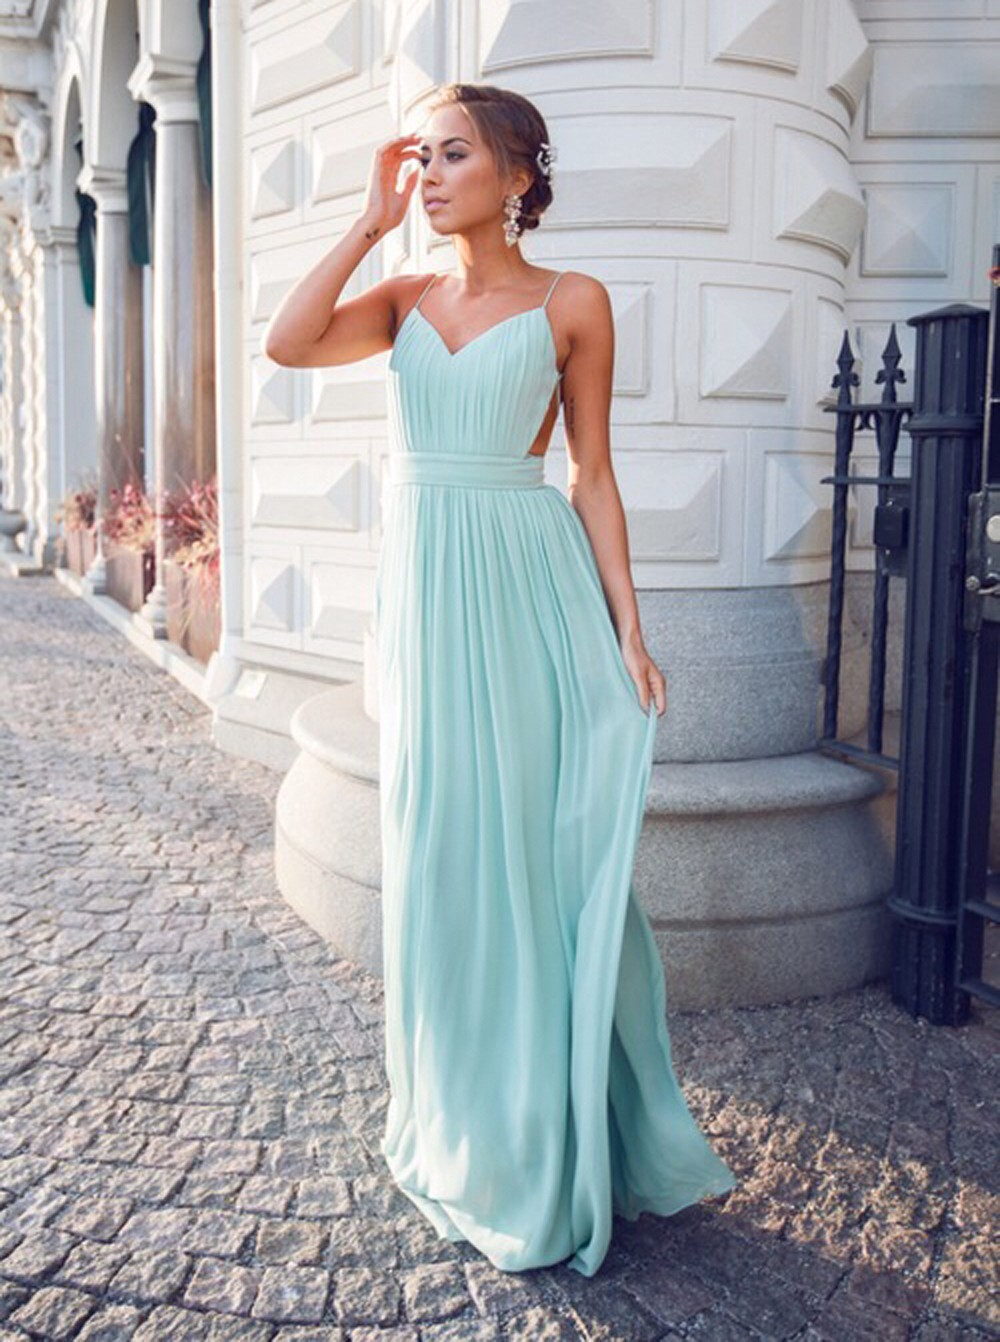 b6426bebc51 Sexy V-neck Spaghetti Straps Floor-Length Open Back Mint Homecoming Dress  Ruched on Luulla